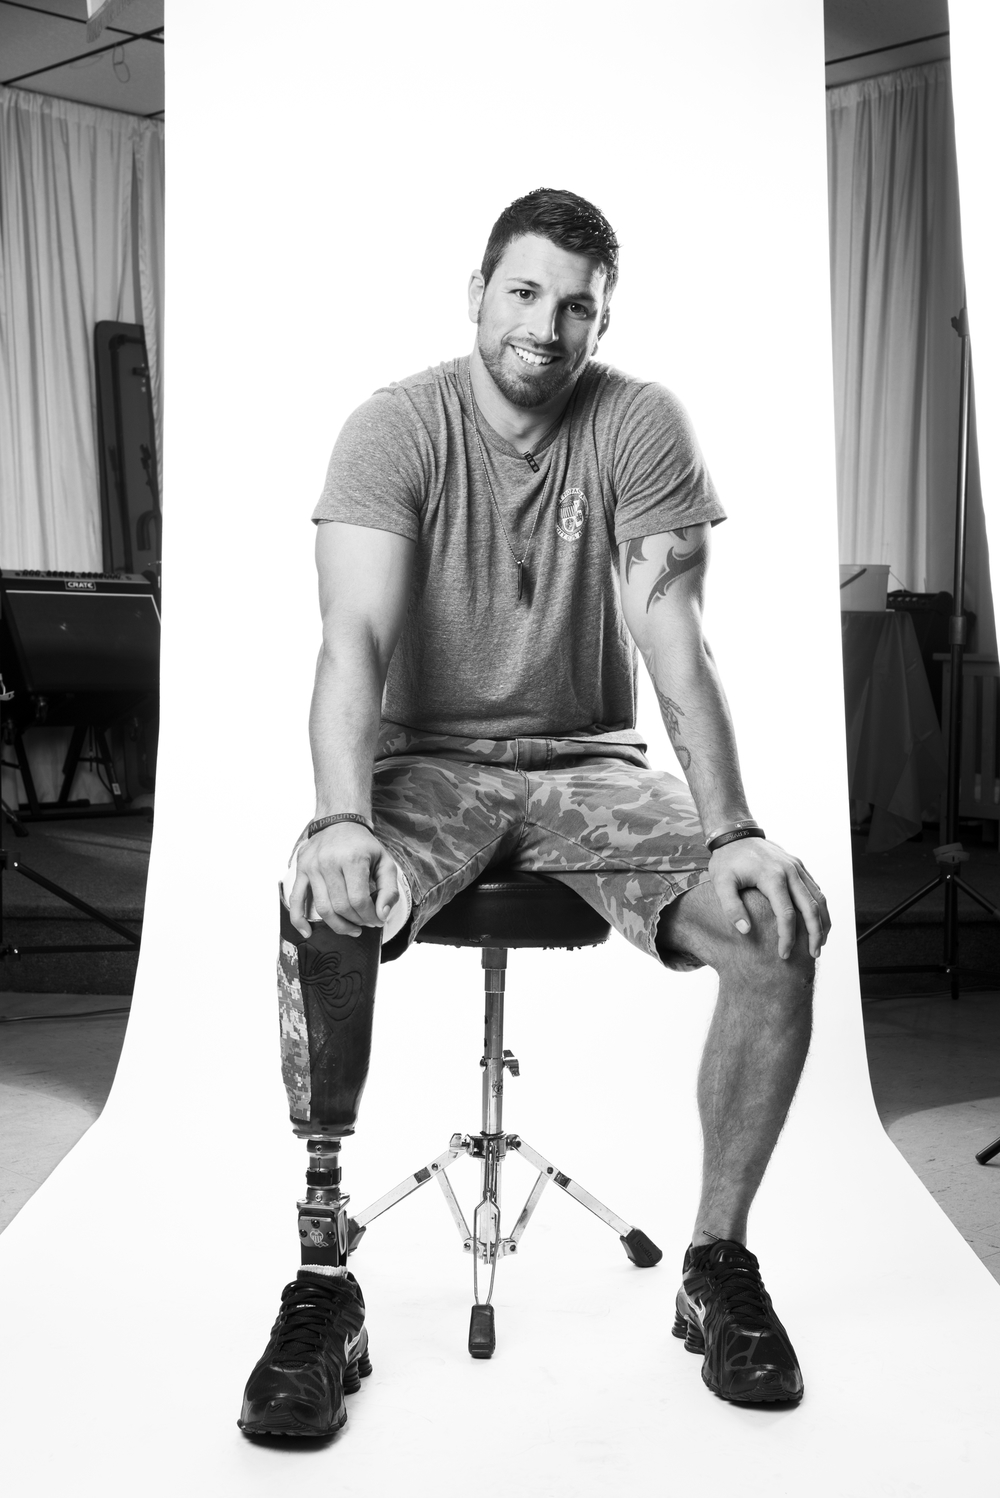 Army Sergeant Brian Taylor Urruela served as an Infantryman during Operation Iraqi Freedom, during where he lost his leg. He was enlisted from Aug. 2004 to Feb. 2011. He now runs a non-profit organization called VetSports. 2013 © Stacy L. Pearsall